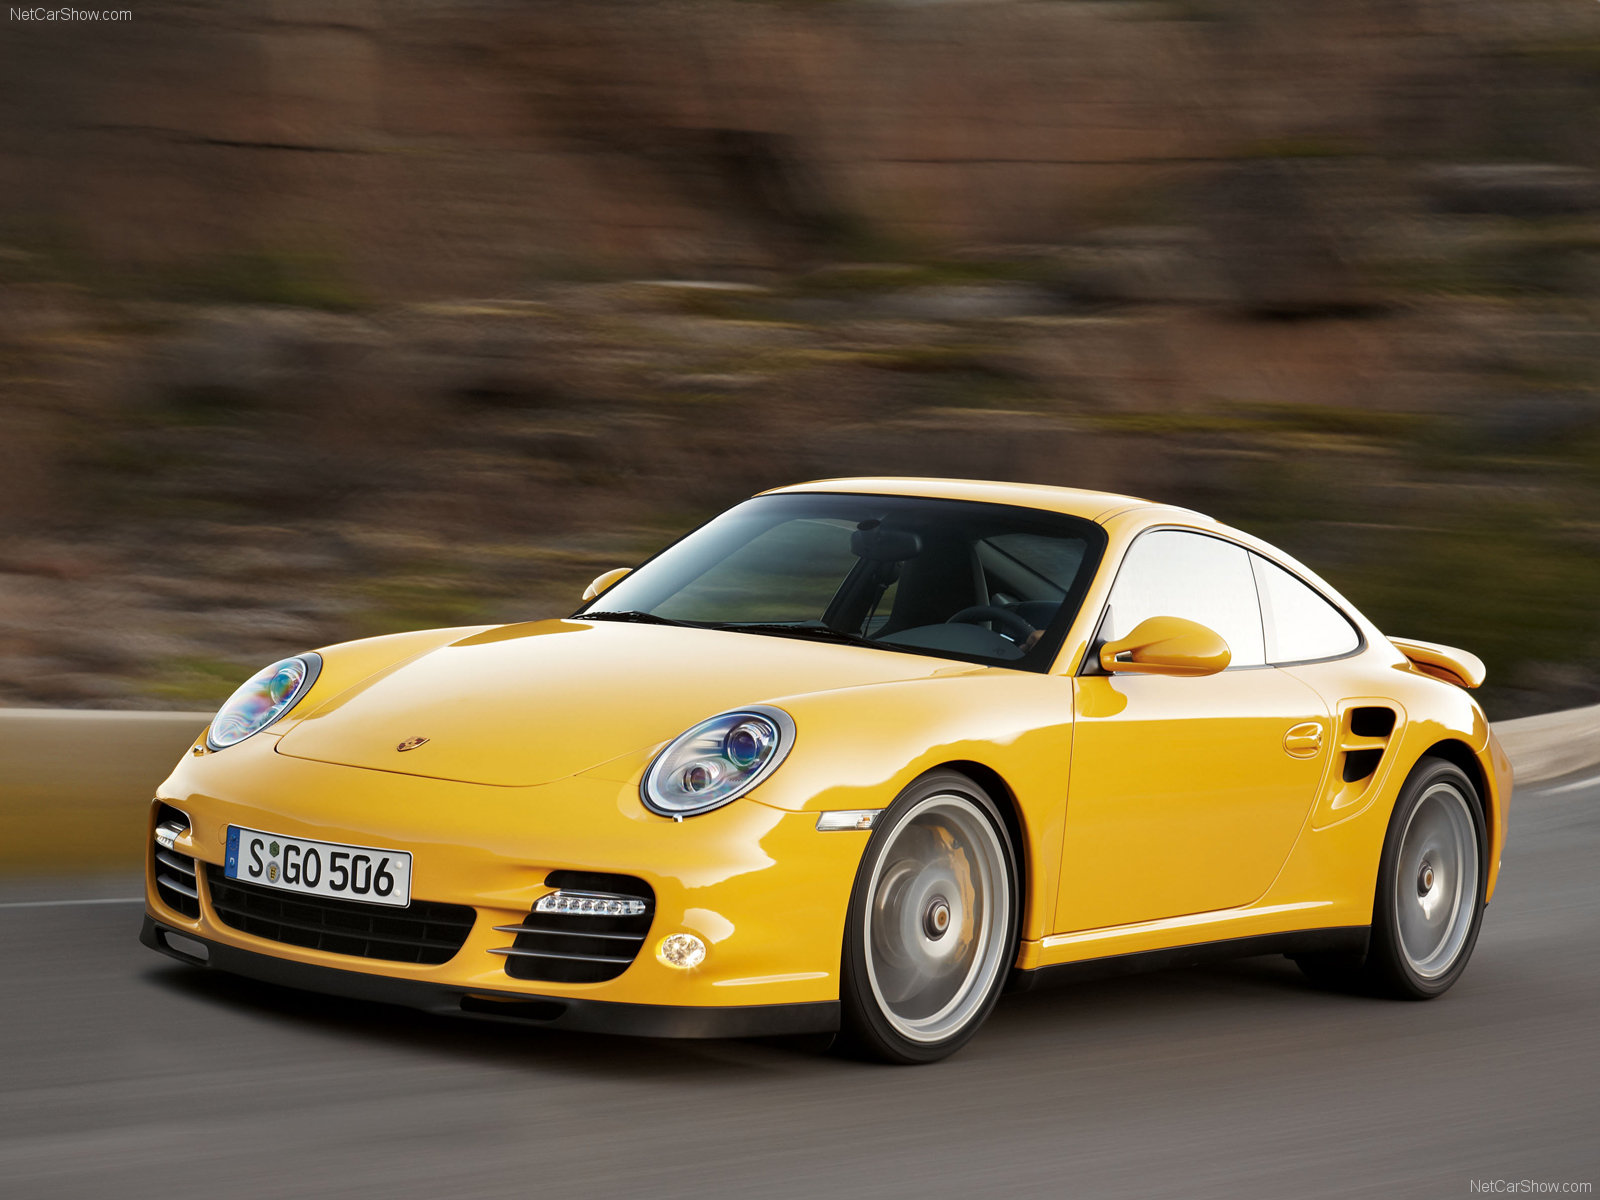 2010 Yellow Porsche 911 Turbo wallpapers